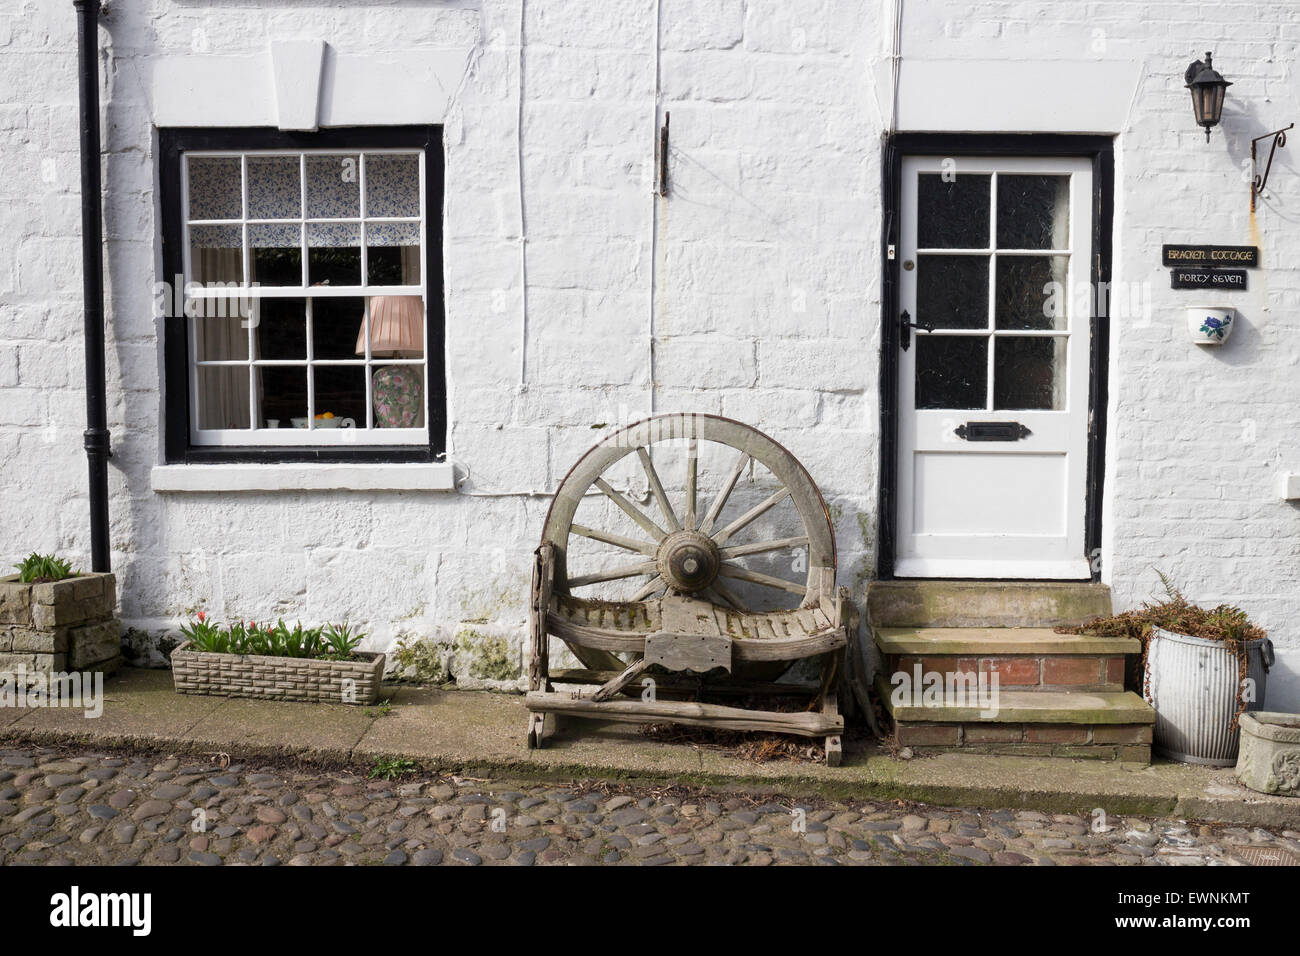 Old wooden cartwheel bench in the foreground, Filey, North Yorkshire - Stock Image